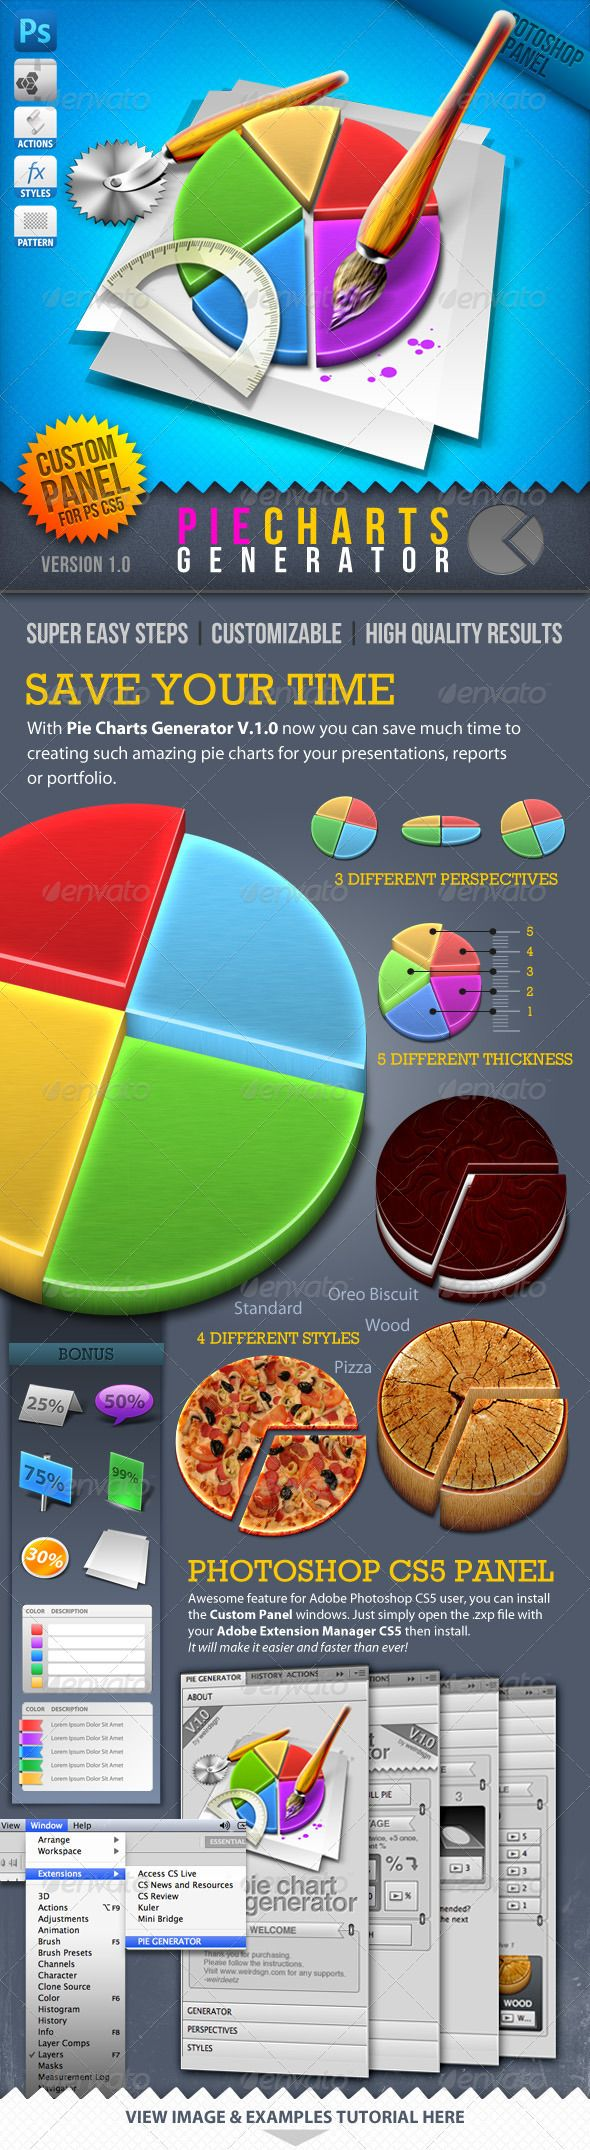 Beautiful and cheap infographics tool series: 3d pie chart generator for photoshop. Include 4 different styles: standard, oreo biscuit, wood, pizza.